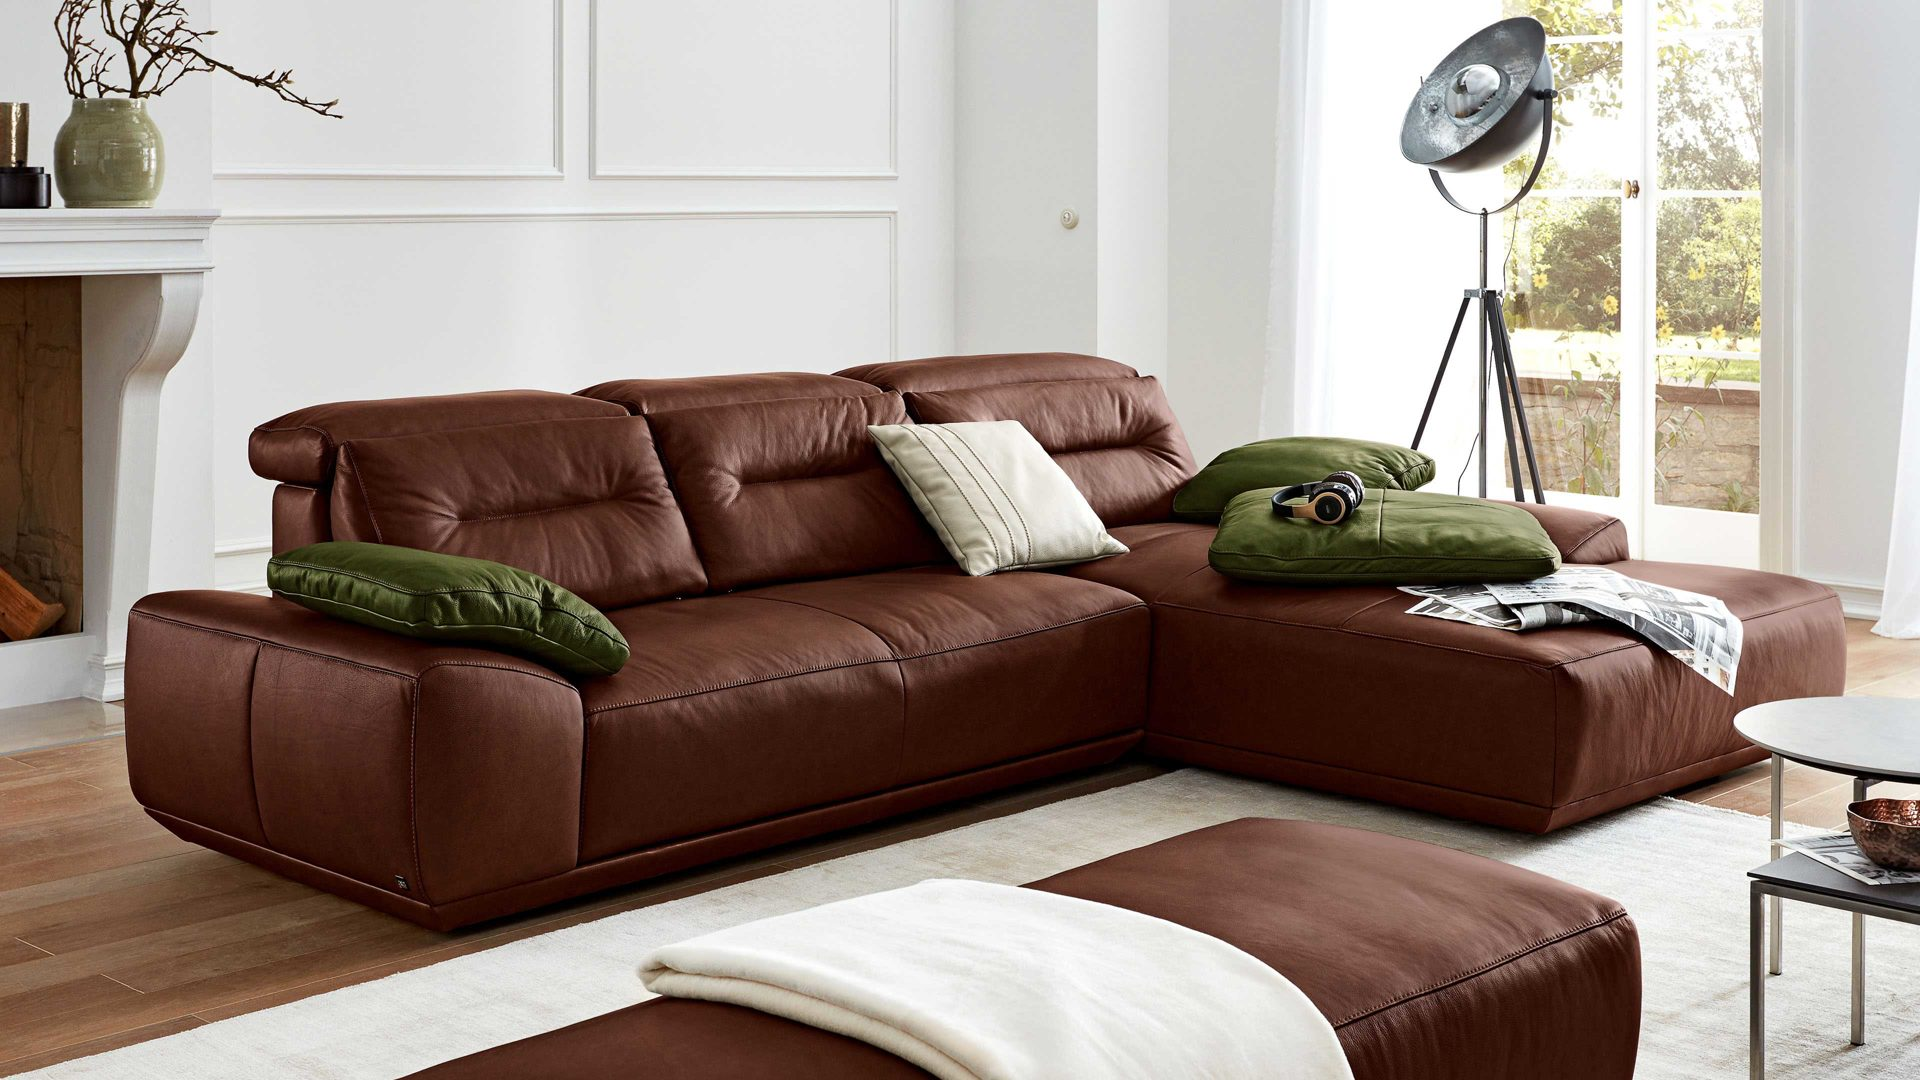 Ecksofa Interliving aus Leder in Braun Interliving Sofa Serie 4000 – Ecksofa chocolatefarbenes Leder Z83.54 – Stellfläche ca. 310 x 209 cm